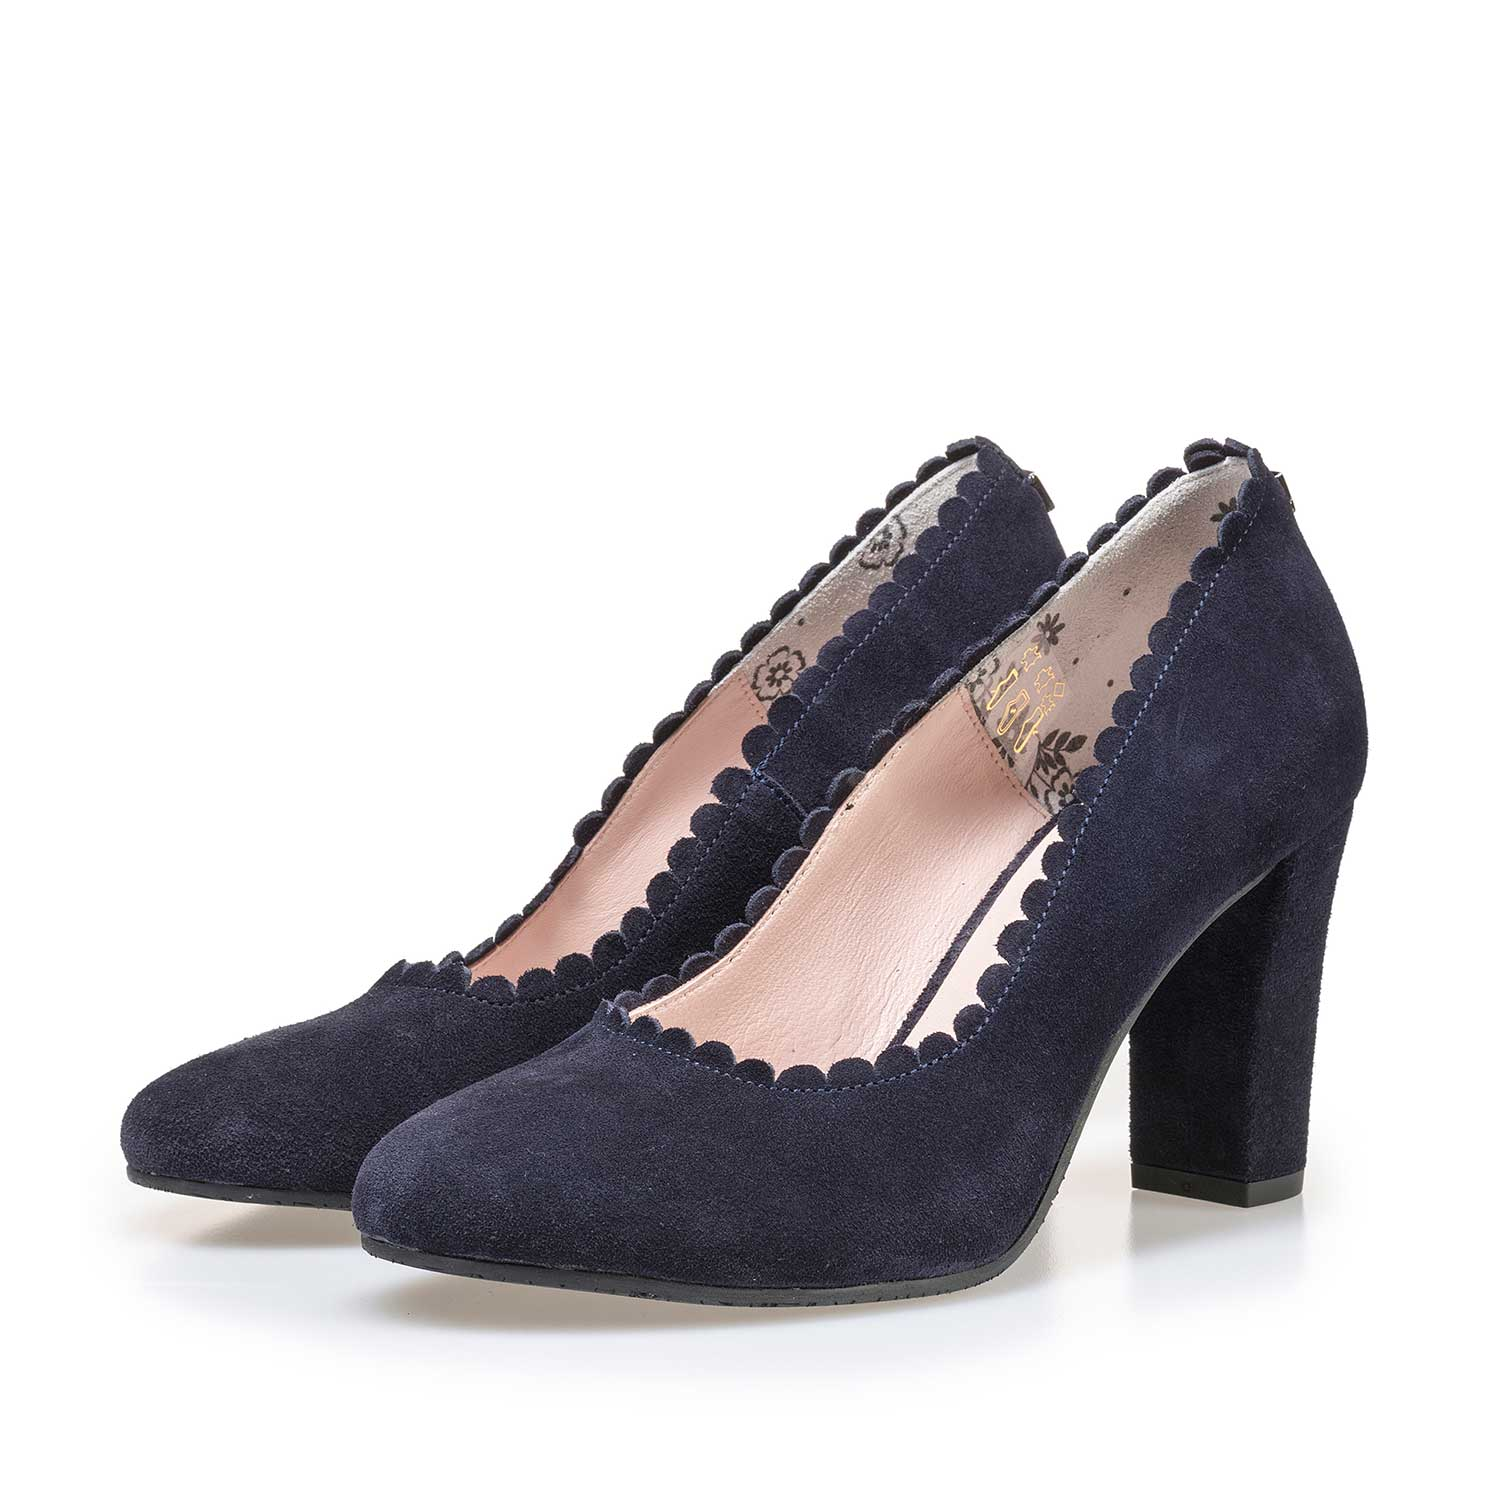 85249/04 - Dark blue calf's suede leather pumps